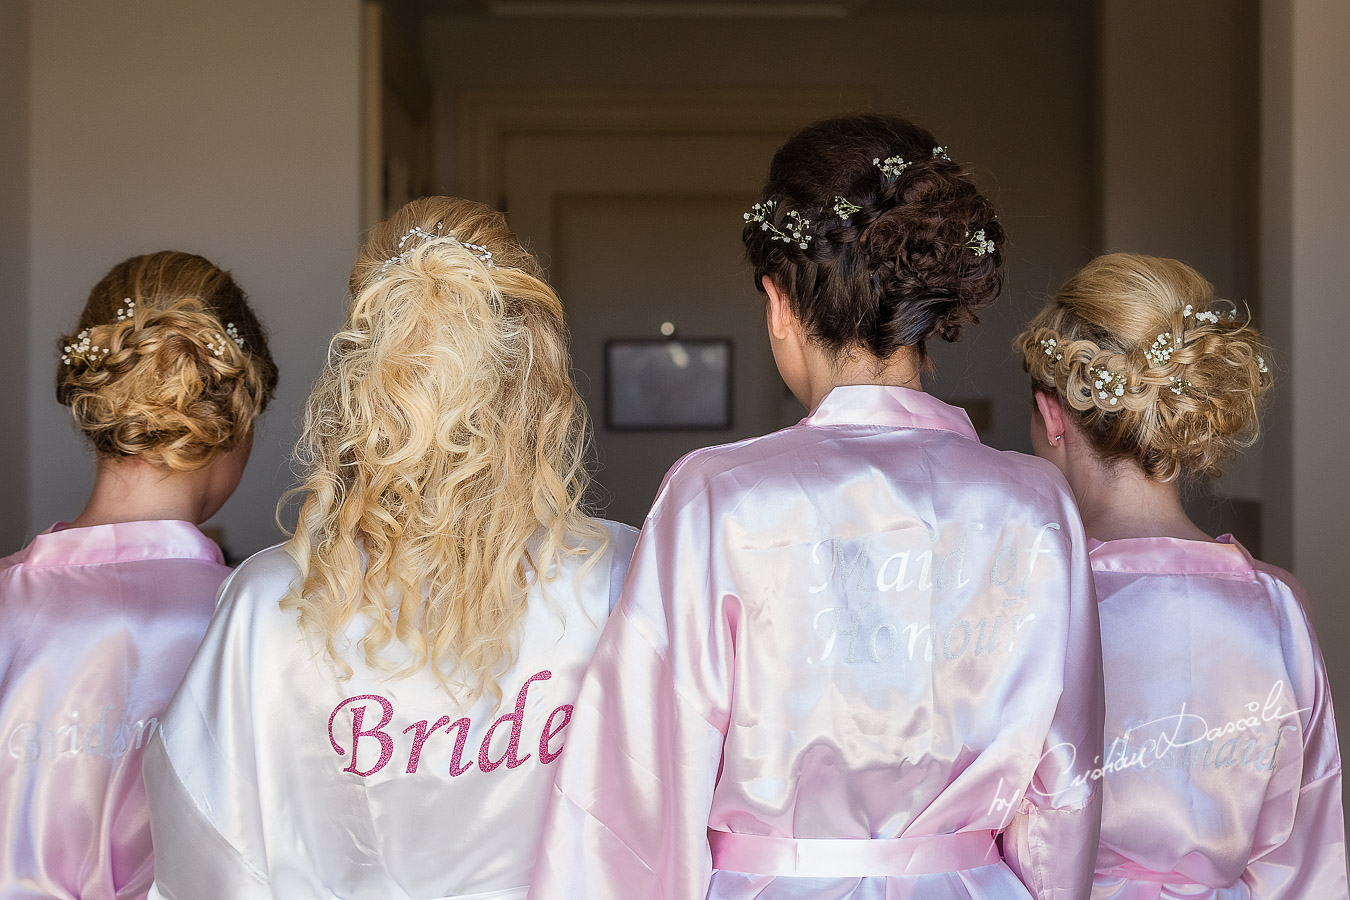 Team Bride is being photographed in the Bridal robe before getting ready at Aphrodite Hills Resort by wedding photographer Cristian Dascalu.